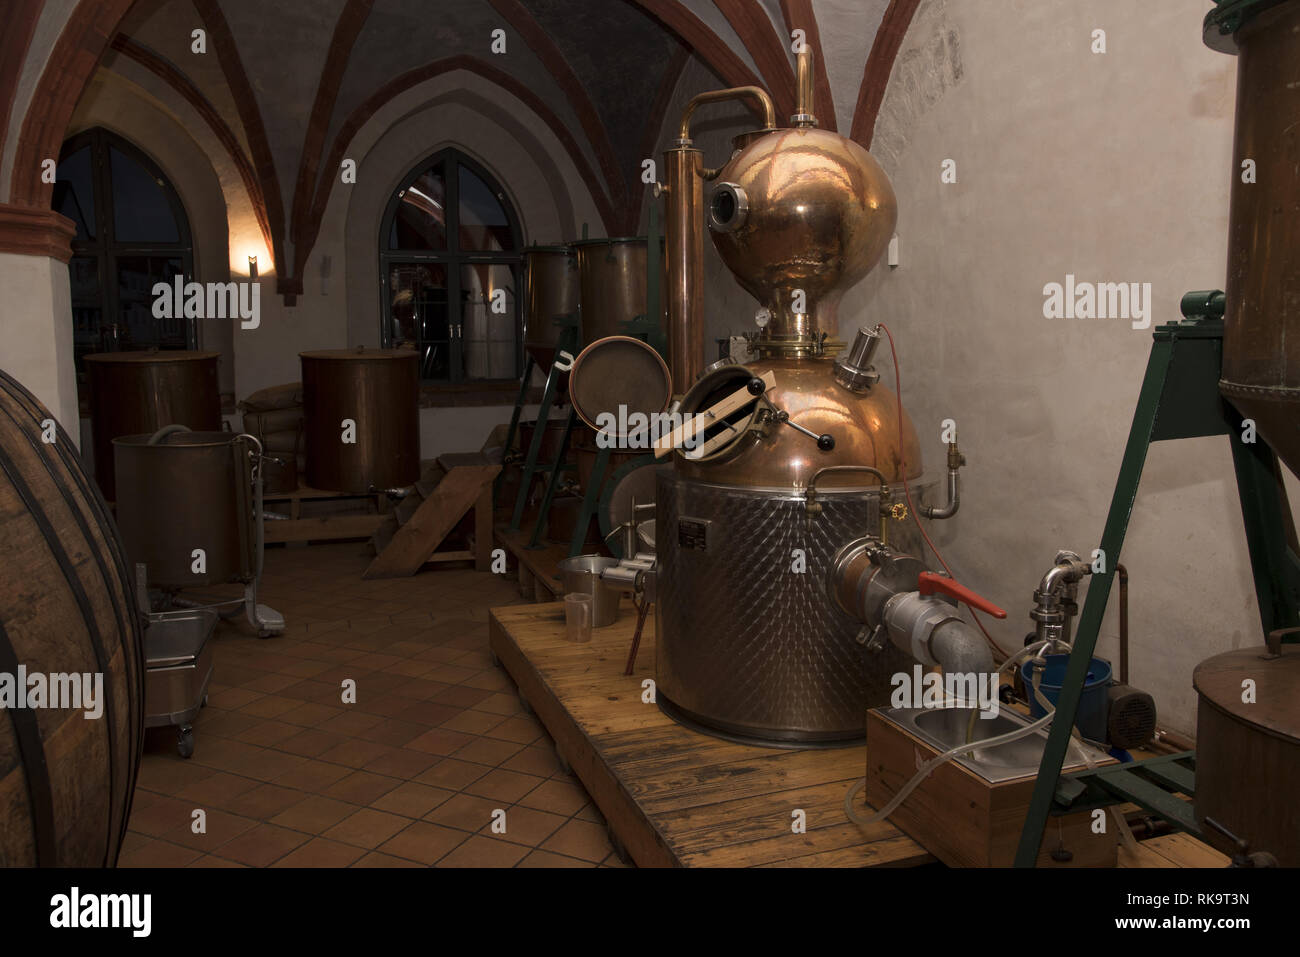 """Sweet herbal liqueur """"Klosterbruder"""" is produced in the old brewhouse of Zinna Abbey a former Cistercian monastery in Jüterbog in Brandenburg, Germany Stock Photo"""